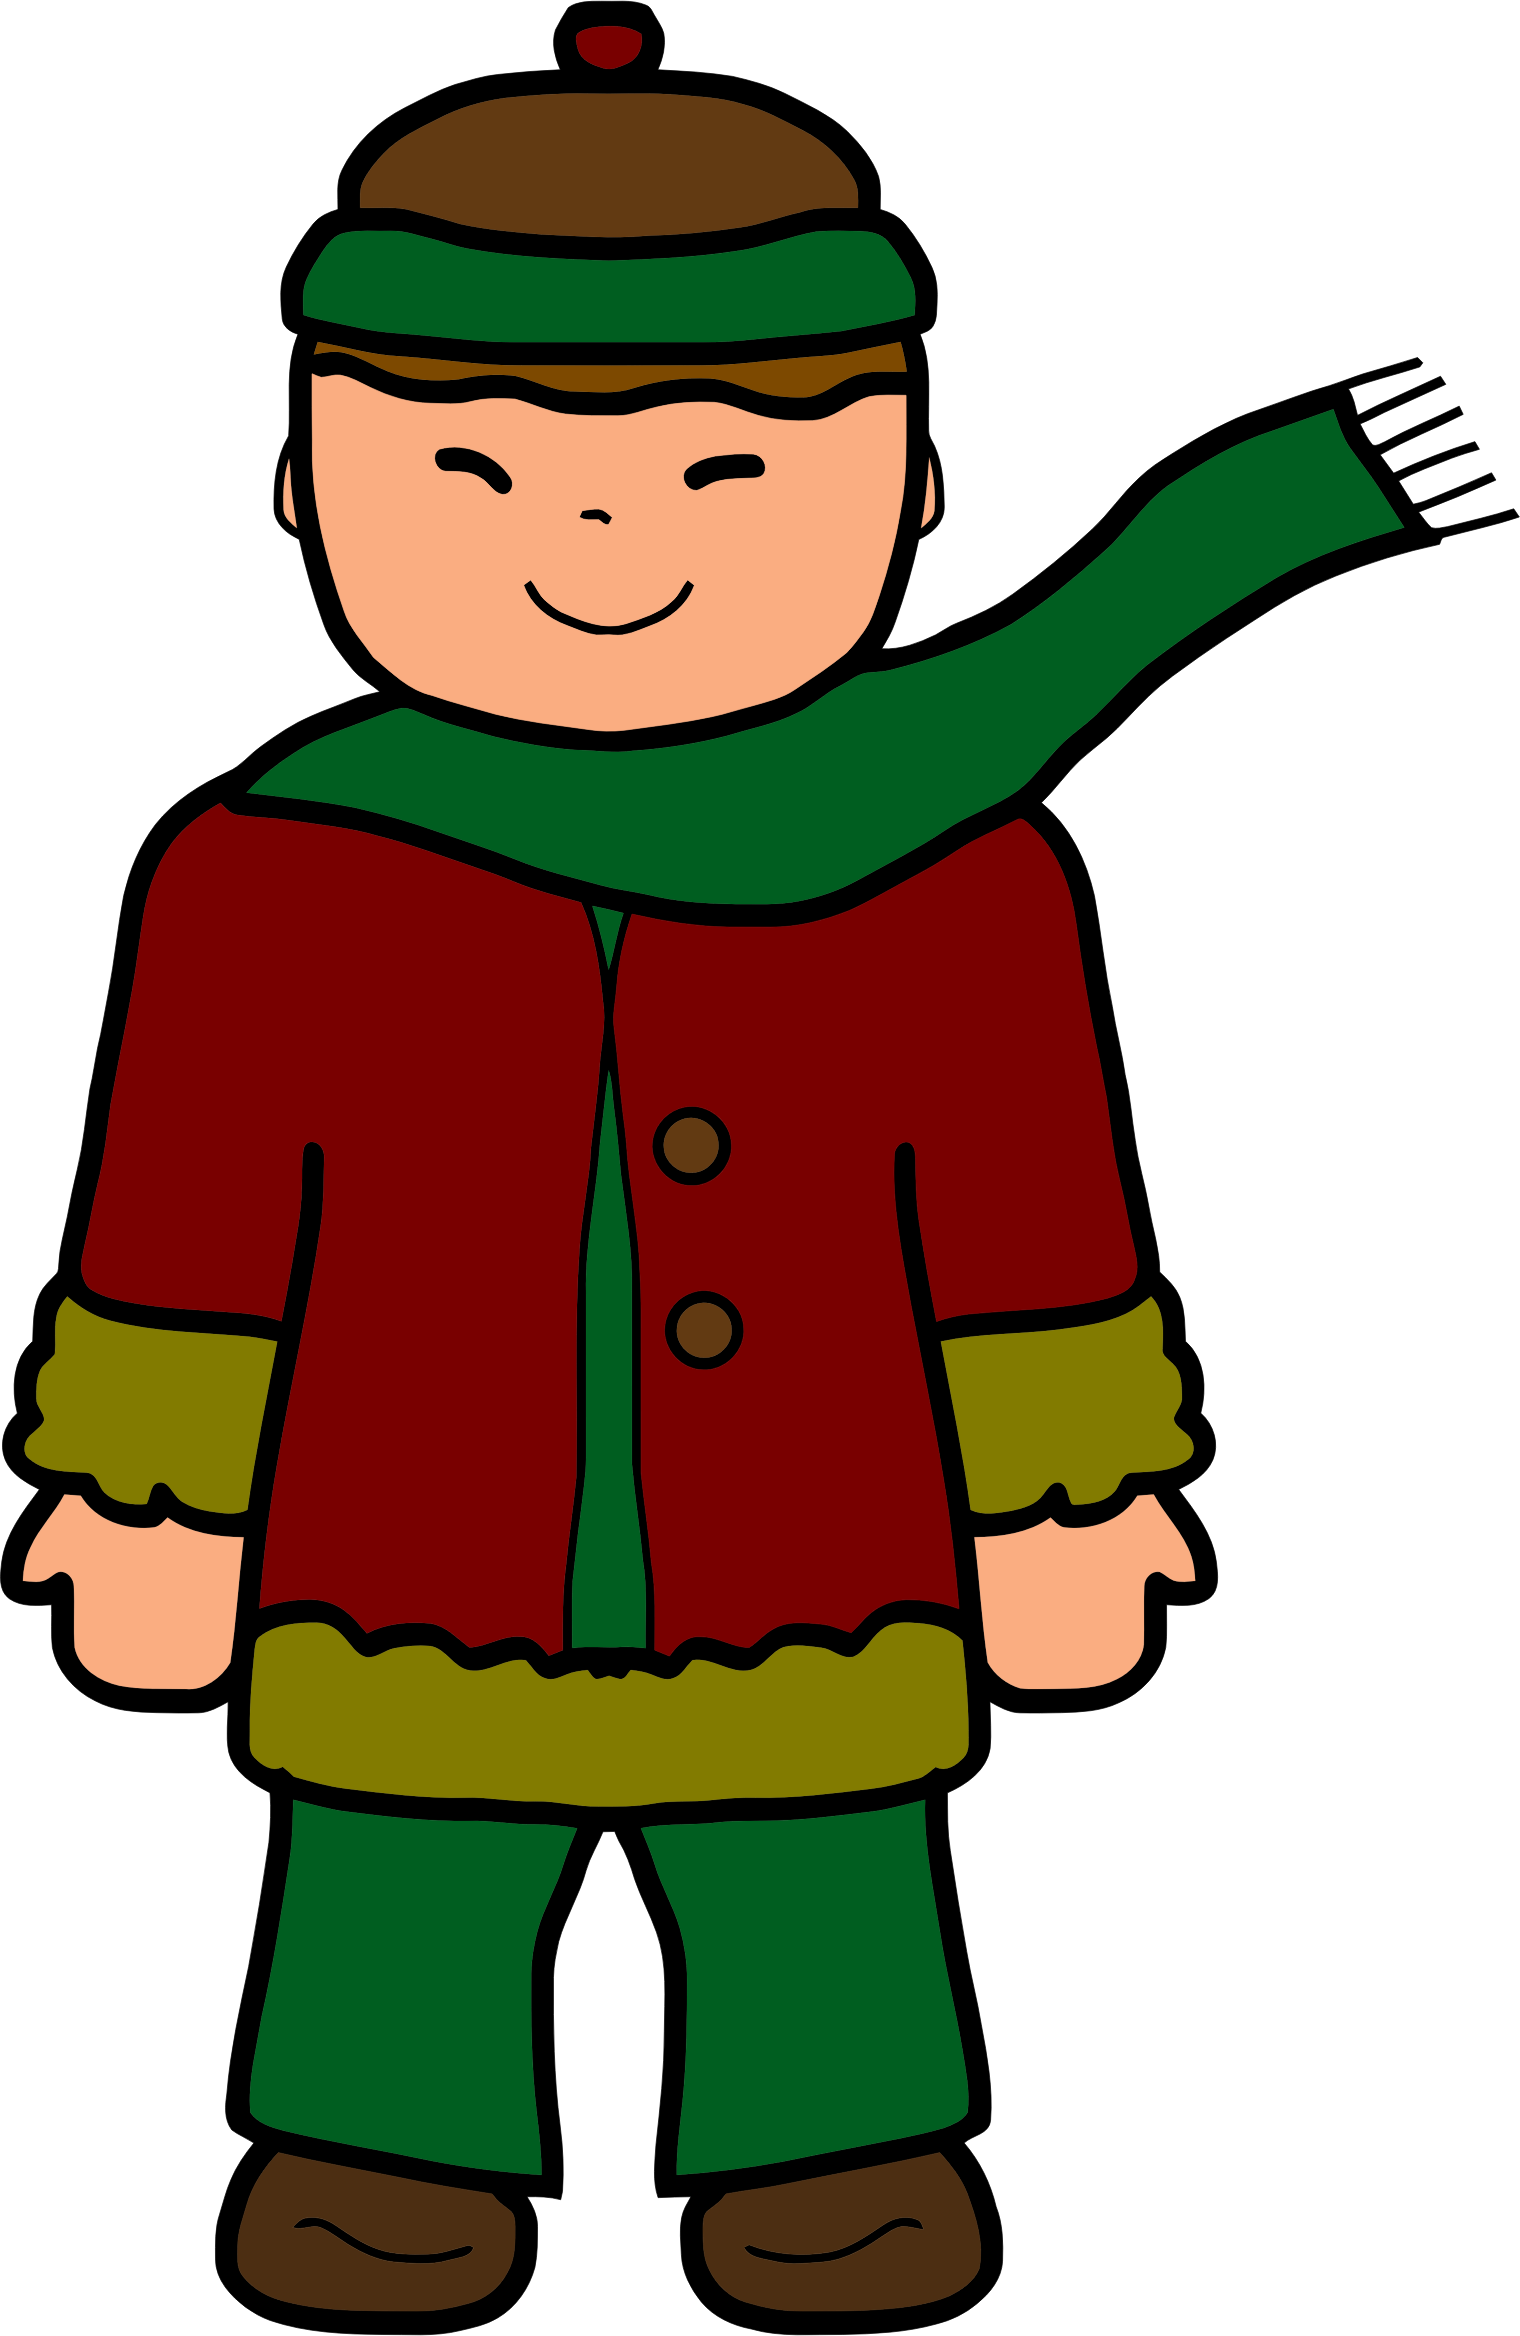 Boy in winter clothing. People clipart clothes